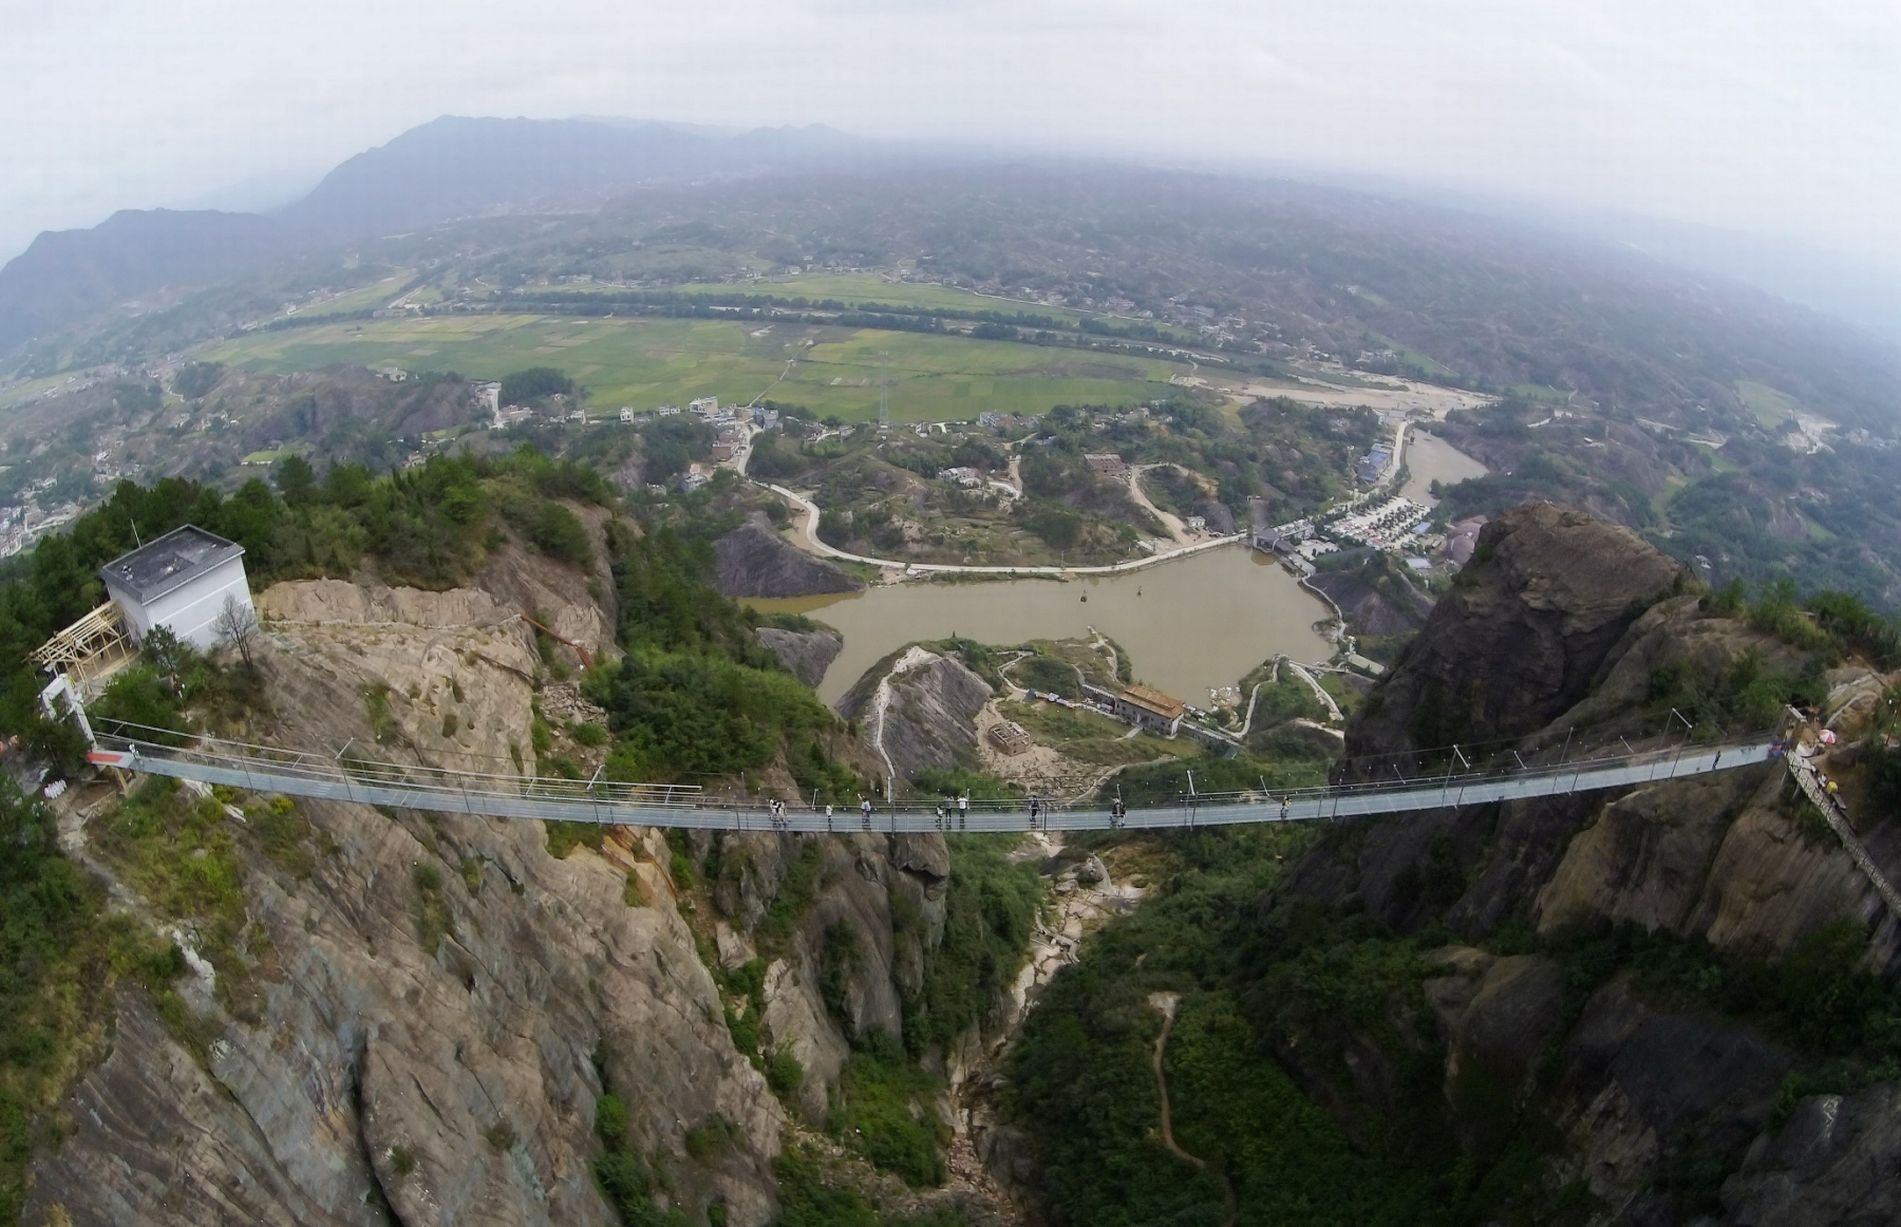 13 Pics Of A Glass Bridge That Strikes Fear In Tourists' Hearts 7